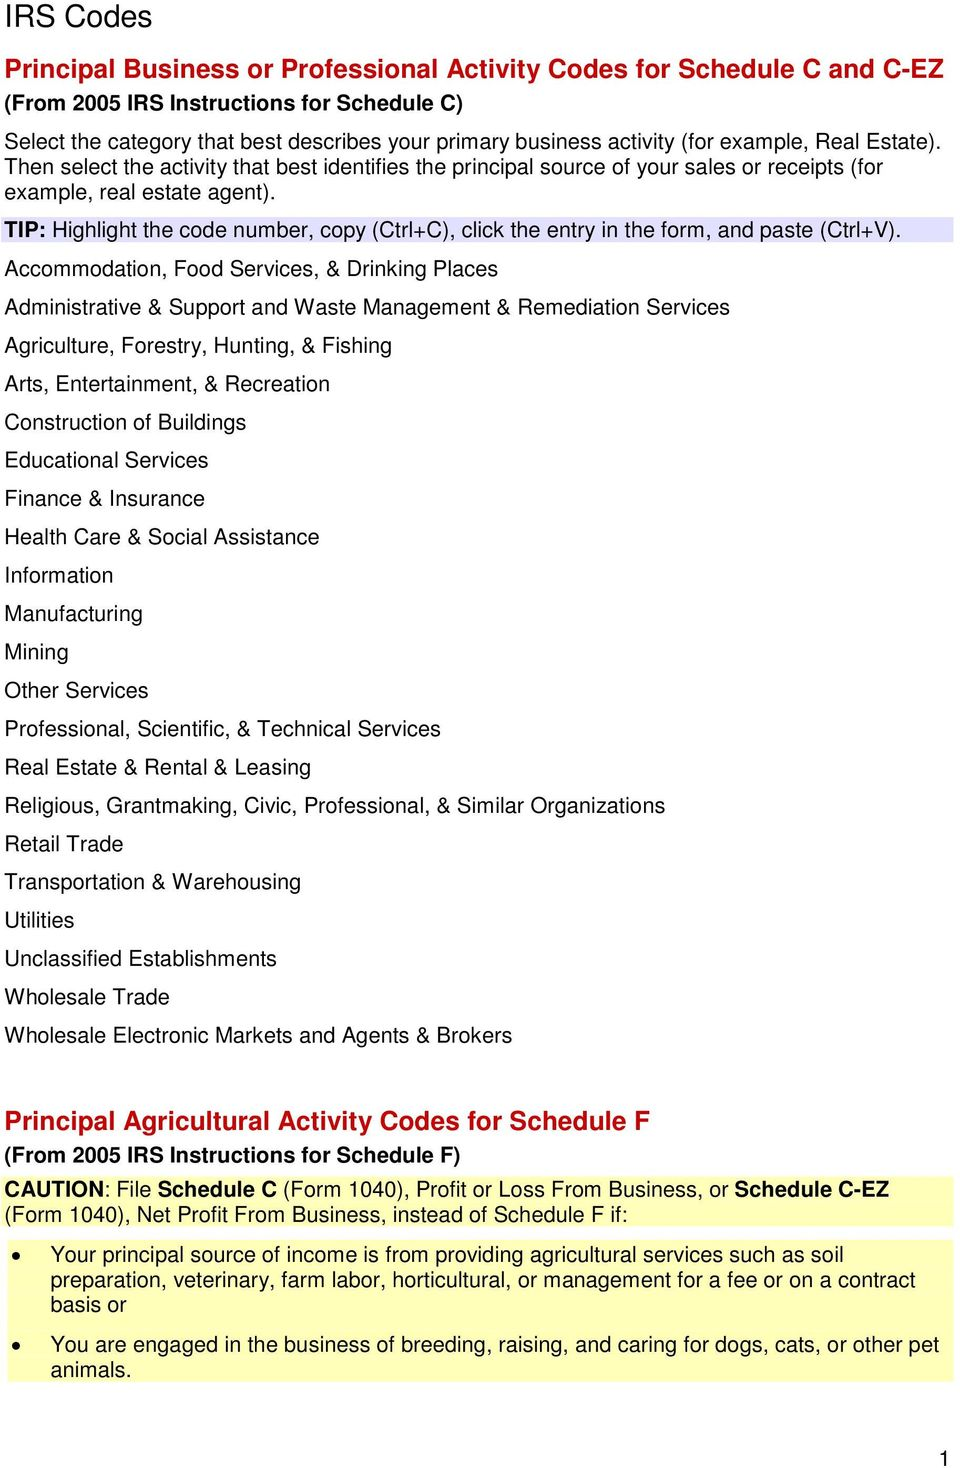 Principal Business Or Professional Activity Codes For Schedule C And